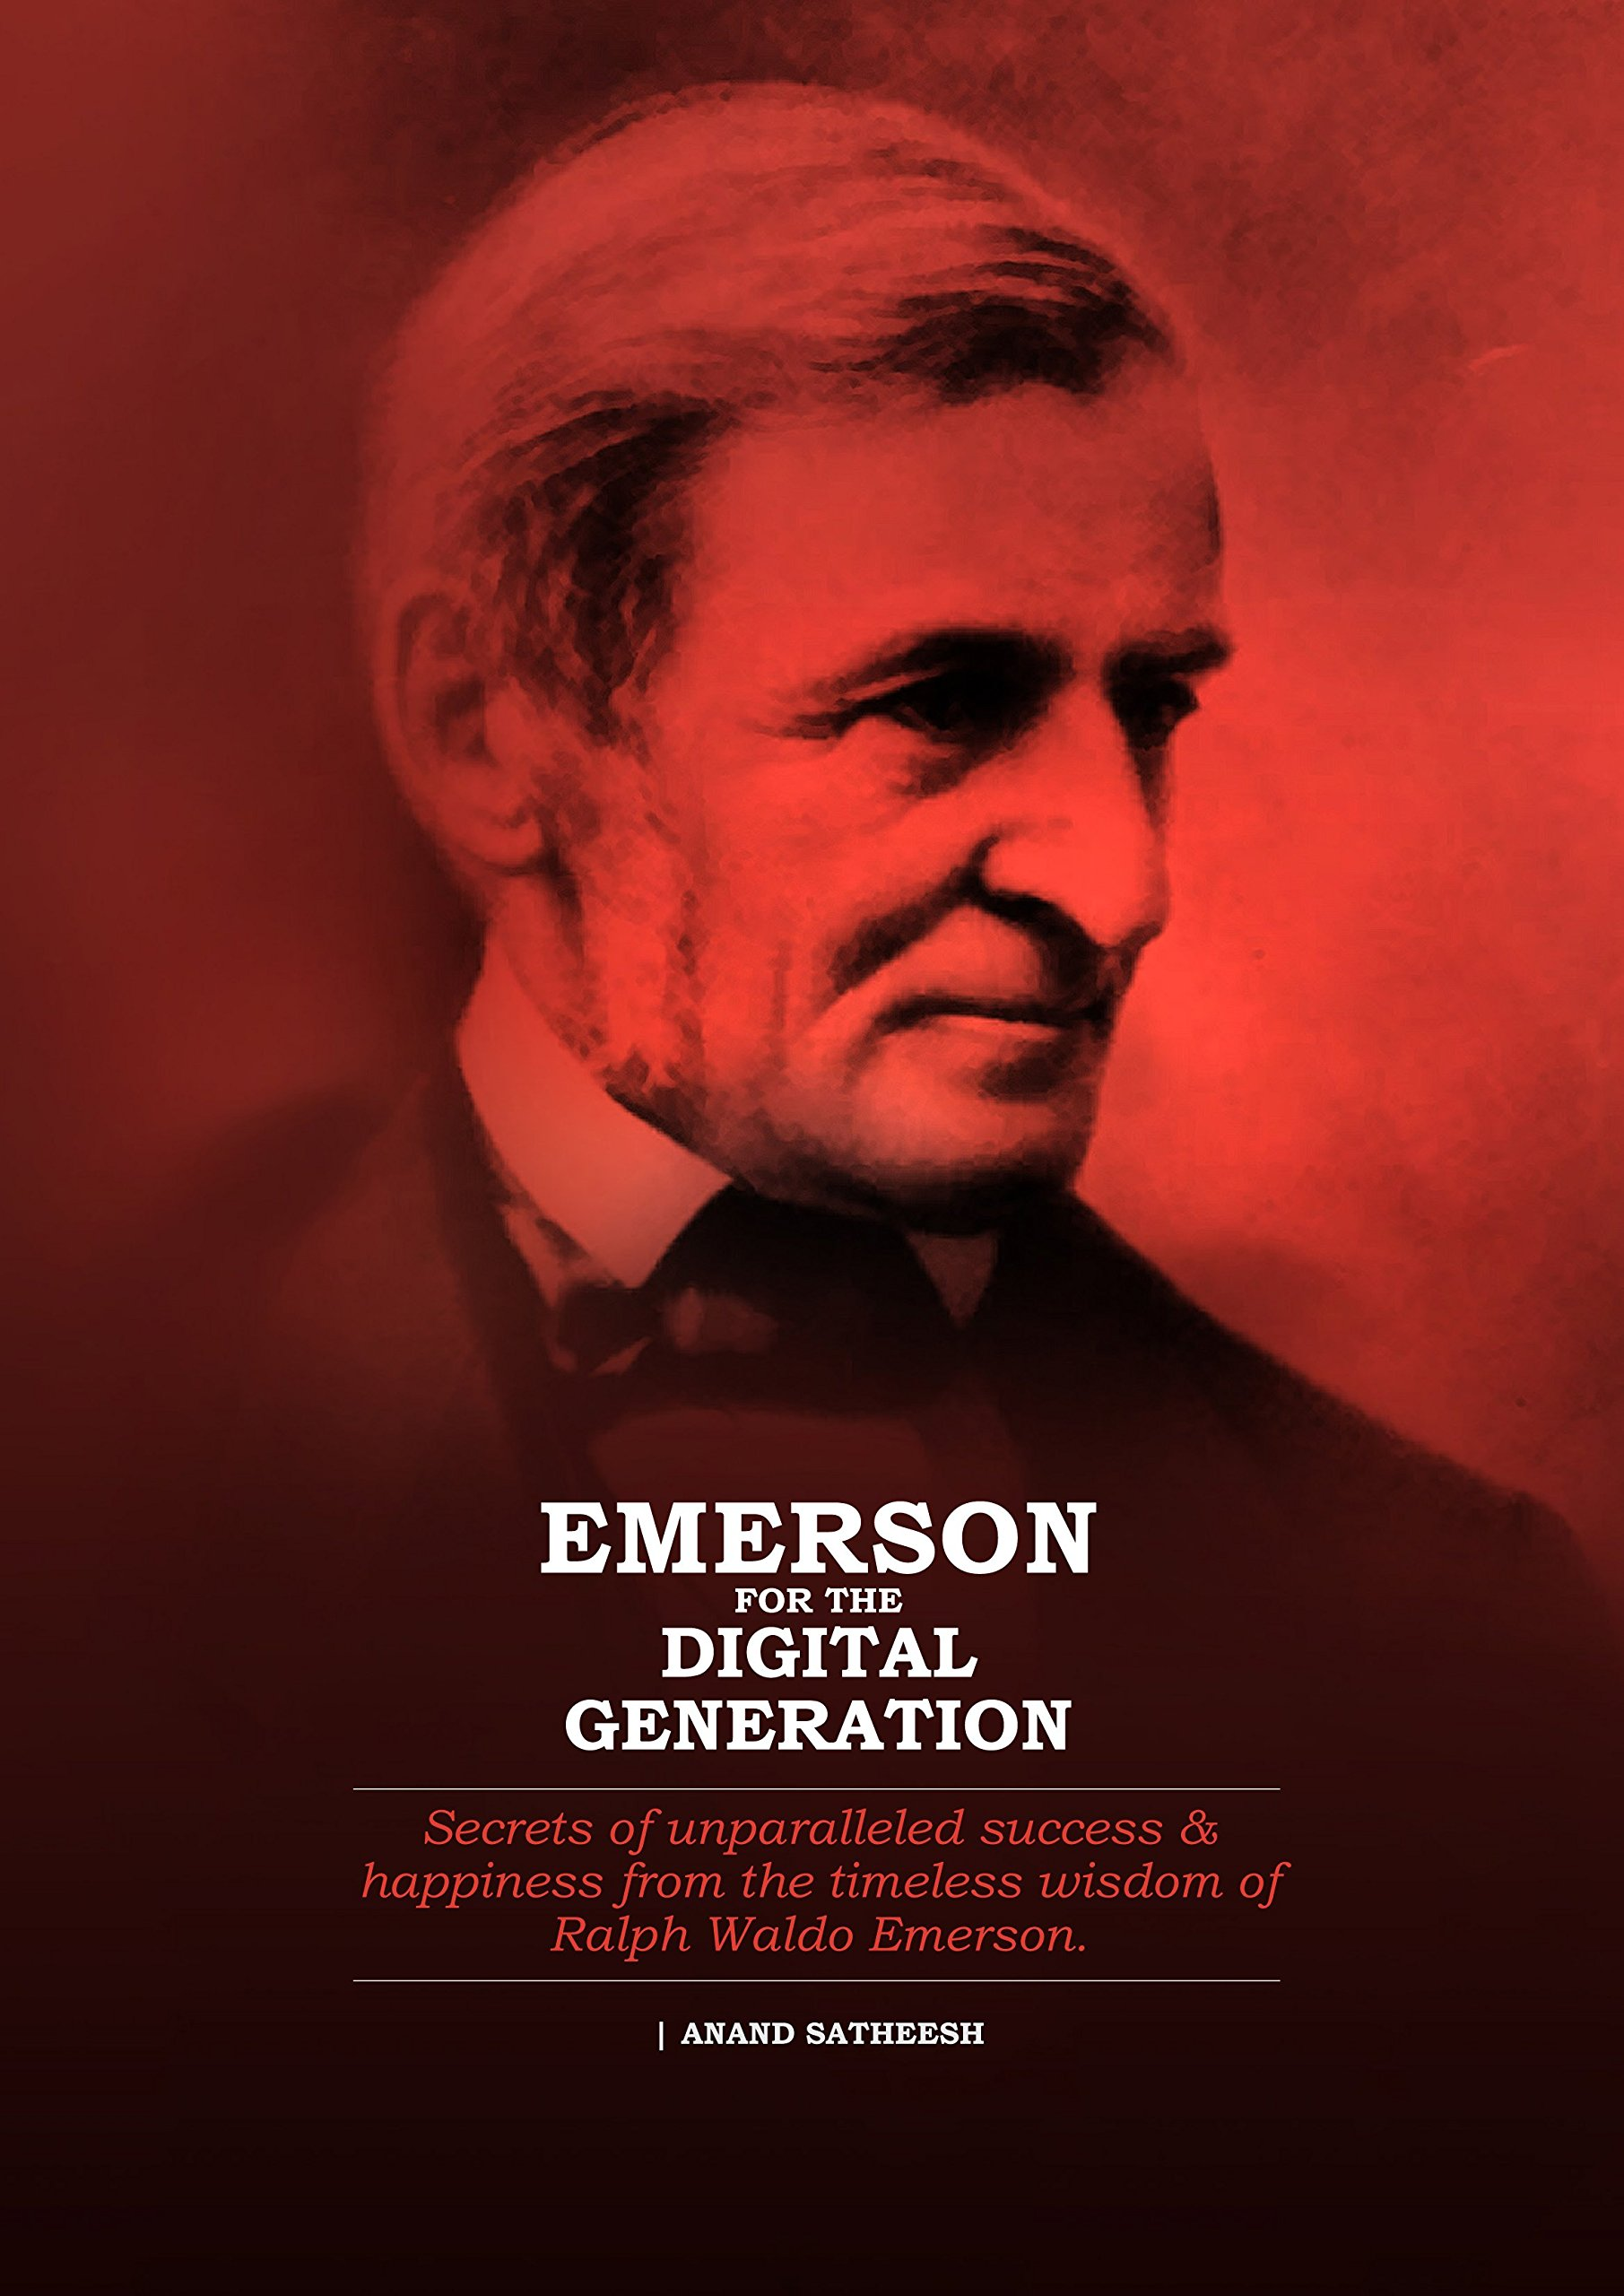 emerson for the digital generation anand satheesh  emerson for the digital generation anand satheesh 9780994787408 com books